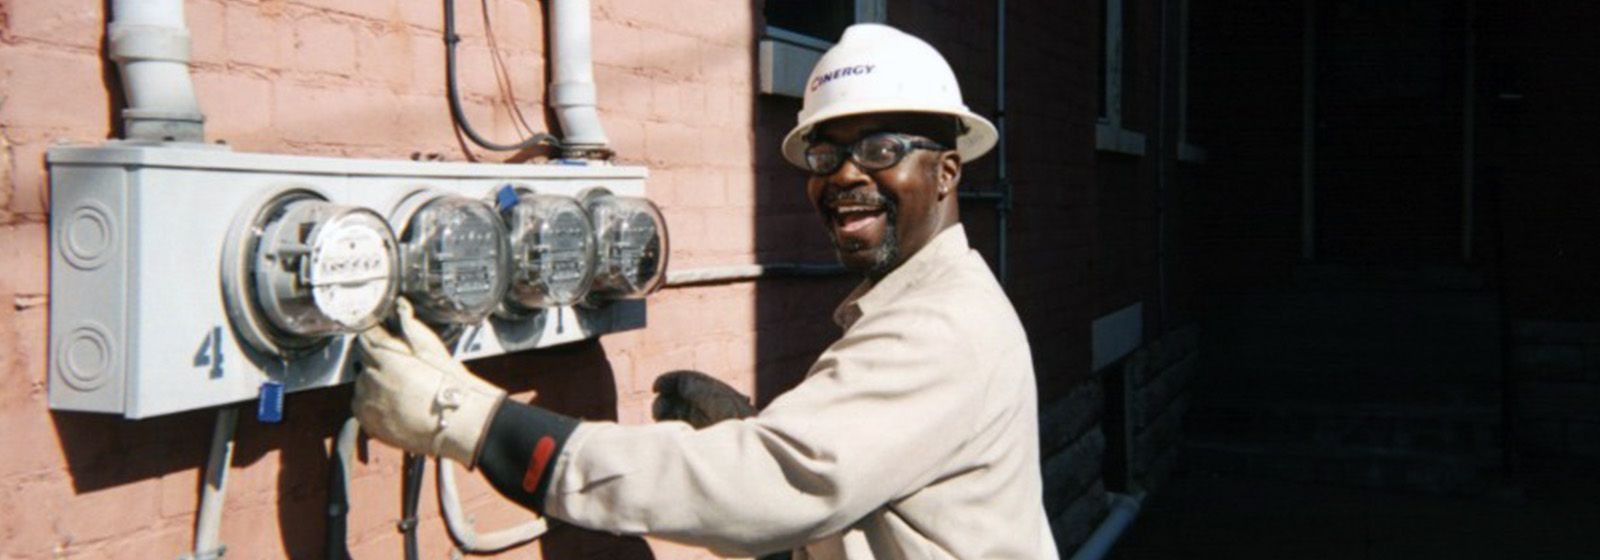 Retro photos: The meter man is all smiles